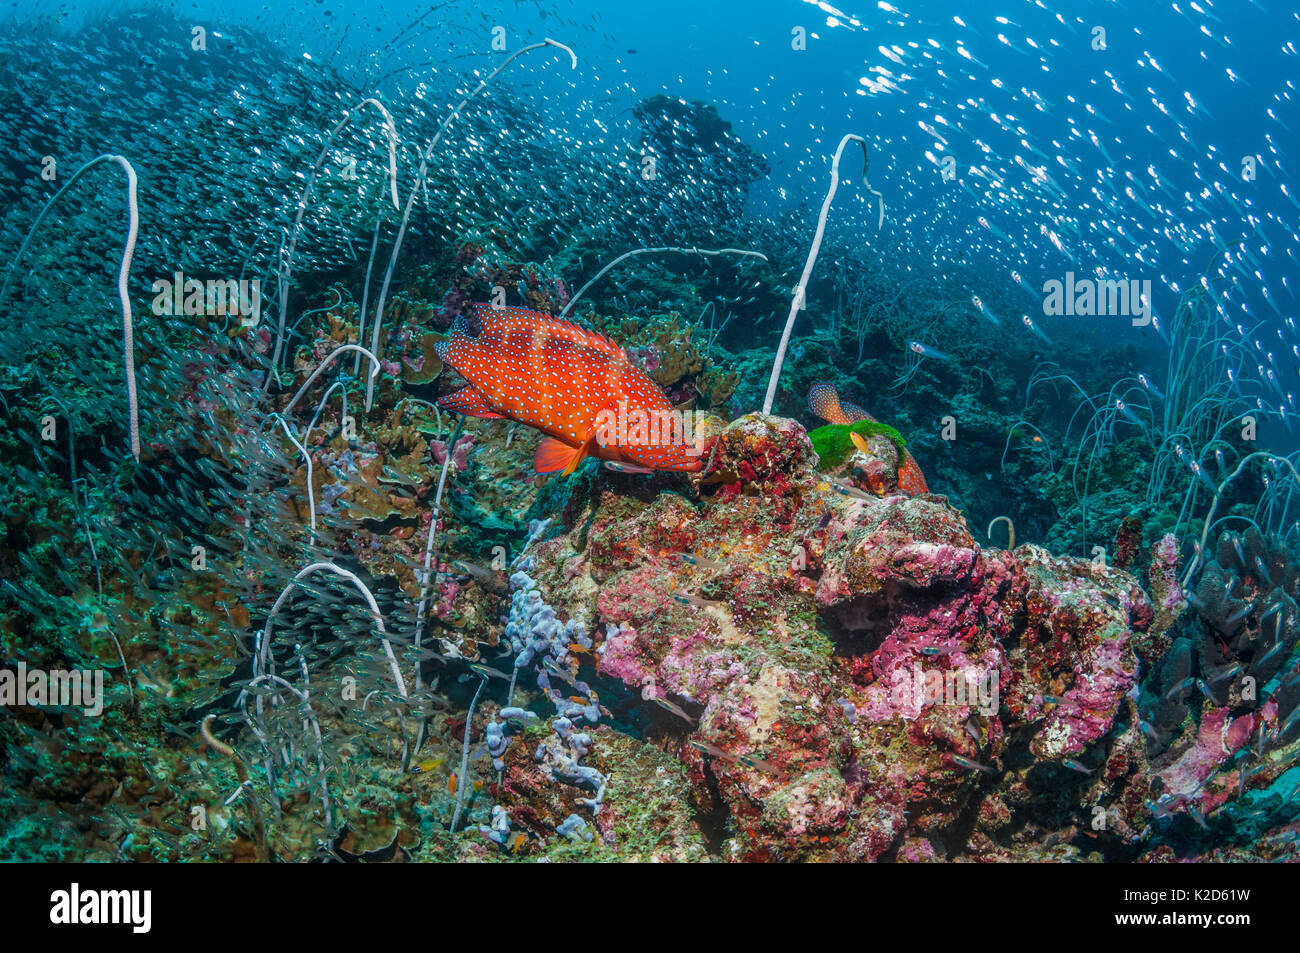 Coral reef with a Coral hind (Cephalophus miniata), Delicate sea whips (Jungceellia fragilis) and a large number of Pygmy sweepers (Parapriacanthus ransonetti) Similan Islands, Andaman Sea, Thailand. - Stock Image